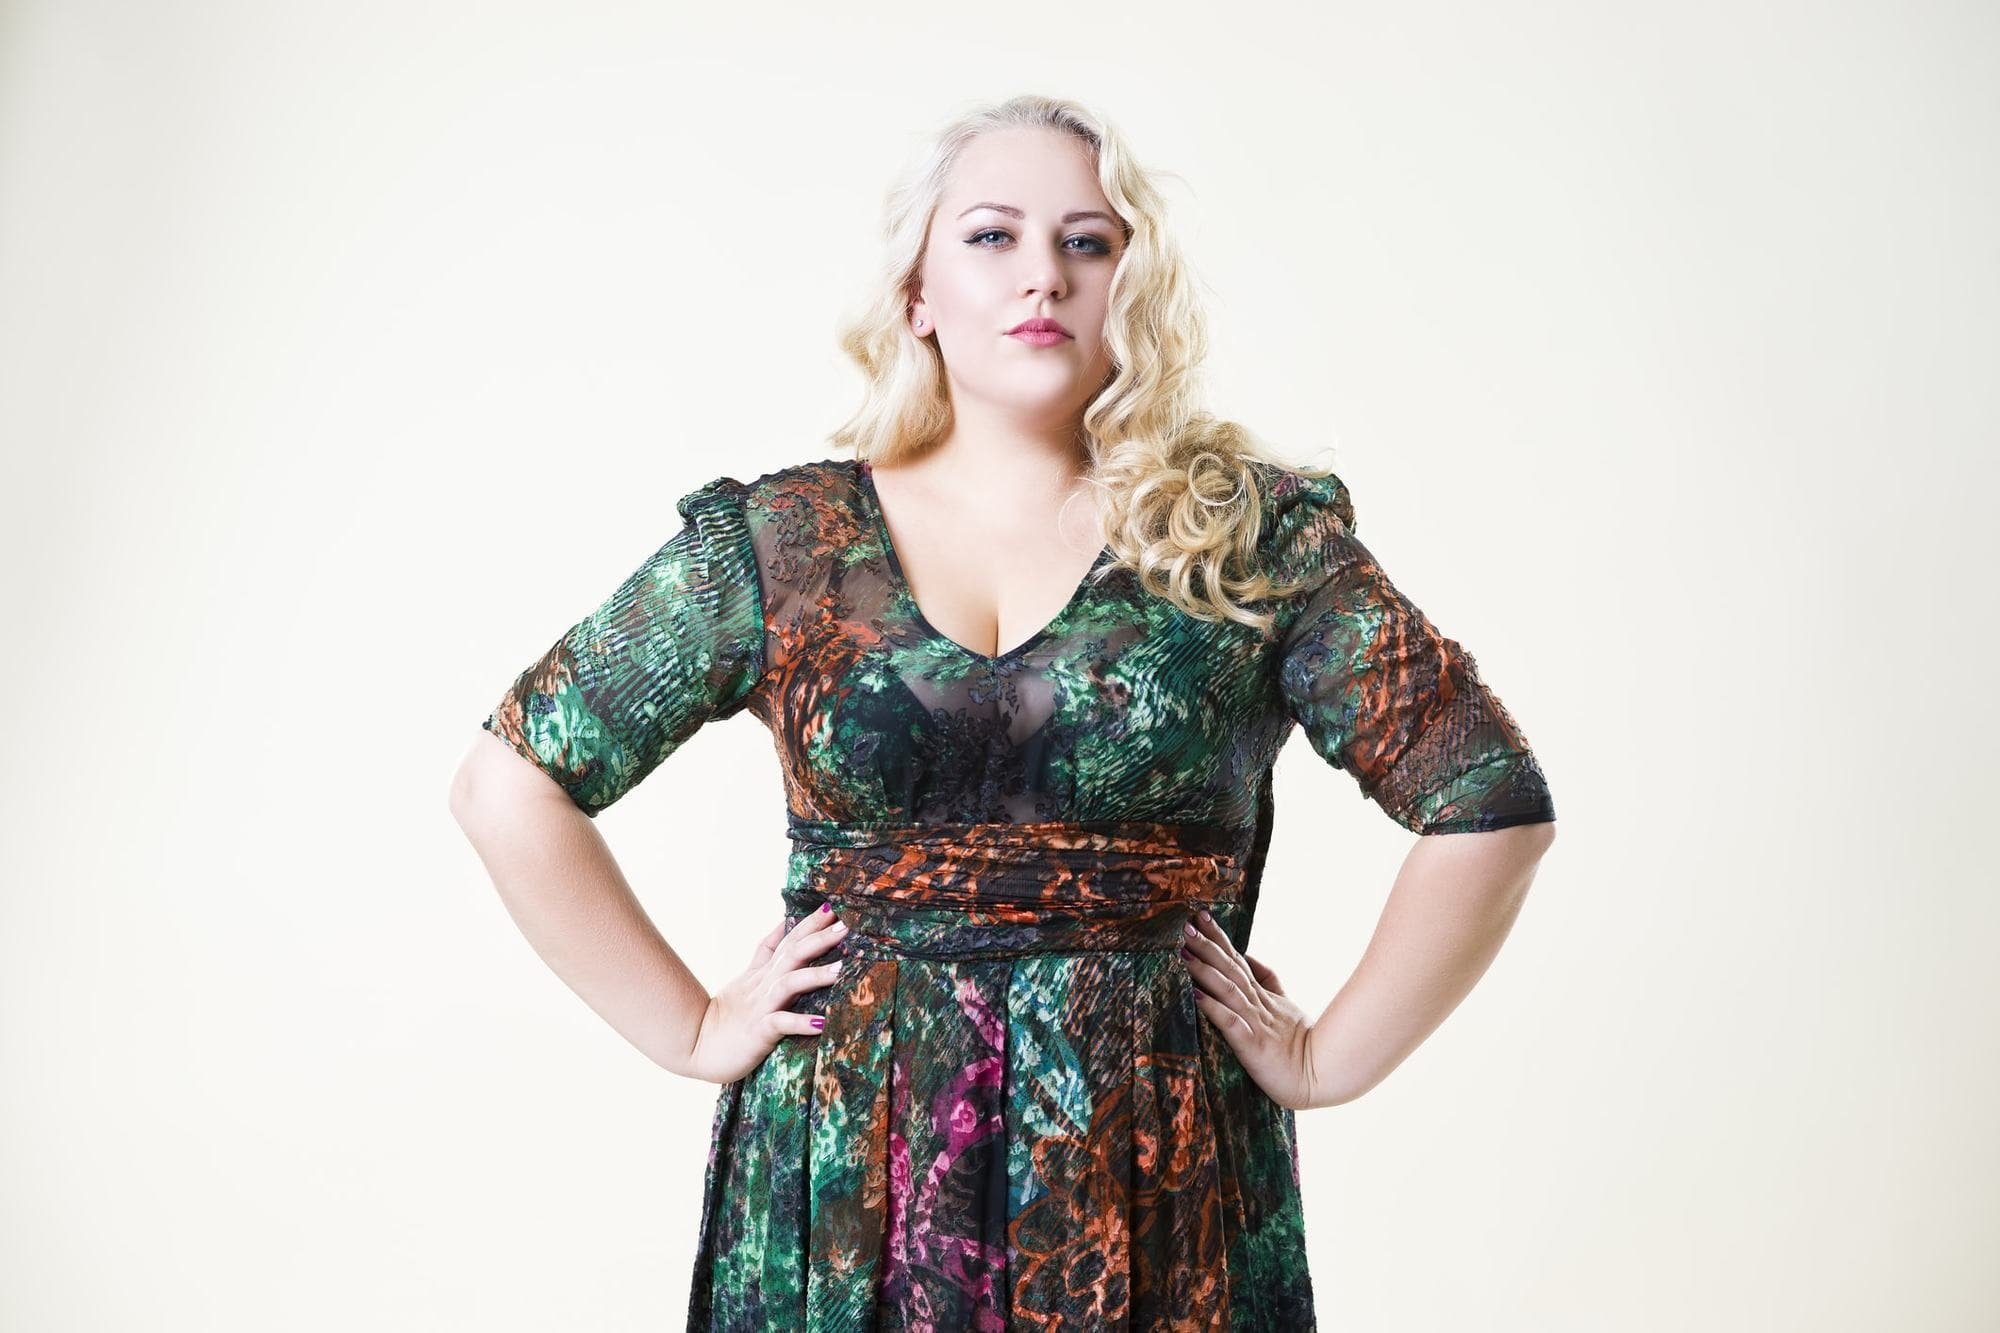 Latest Plus Size Woman Hairstyles -Flirty and Flattering Hair! 4